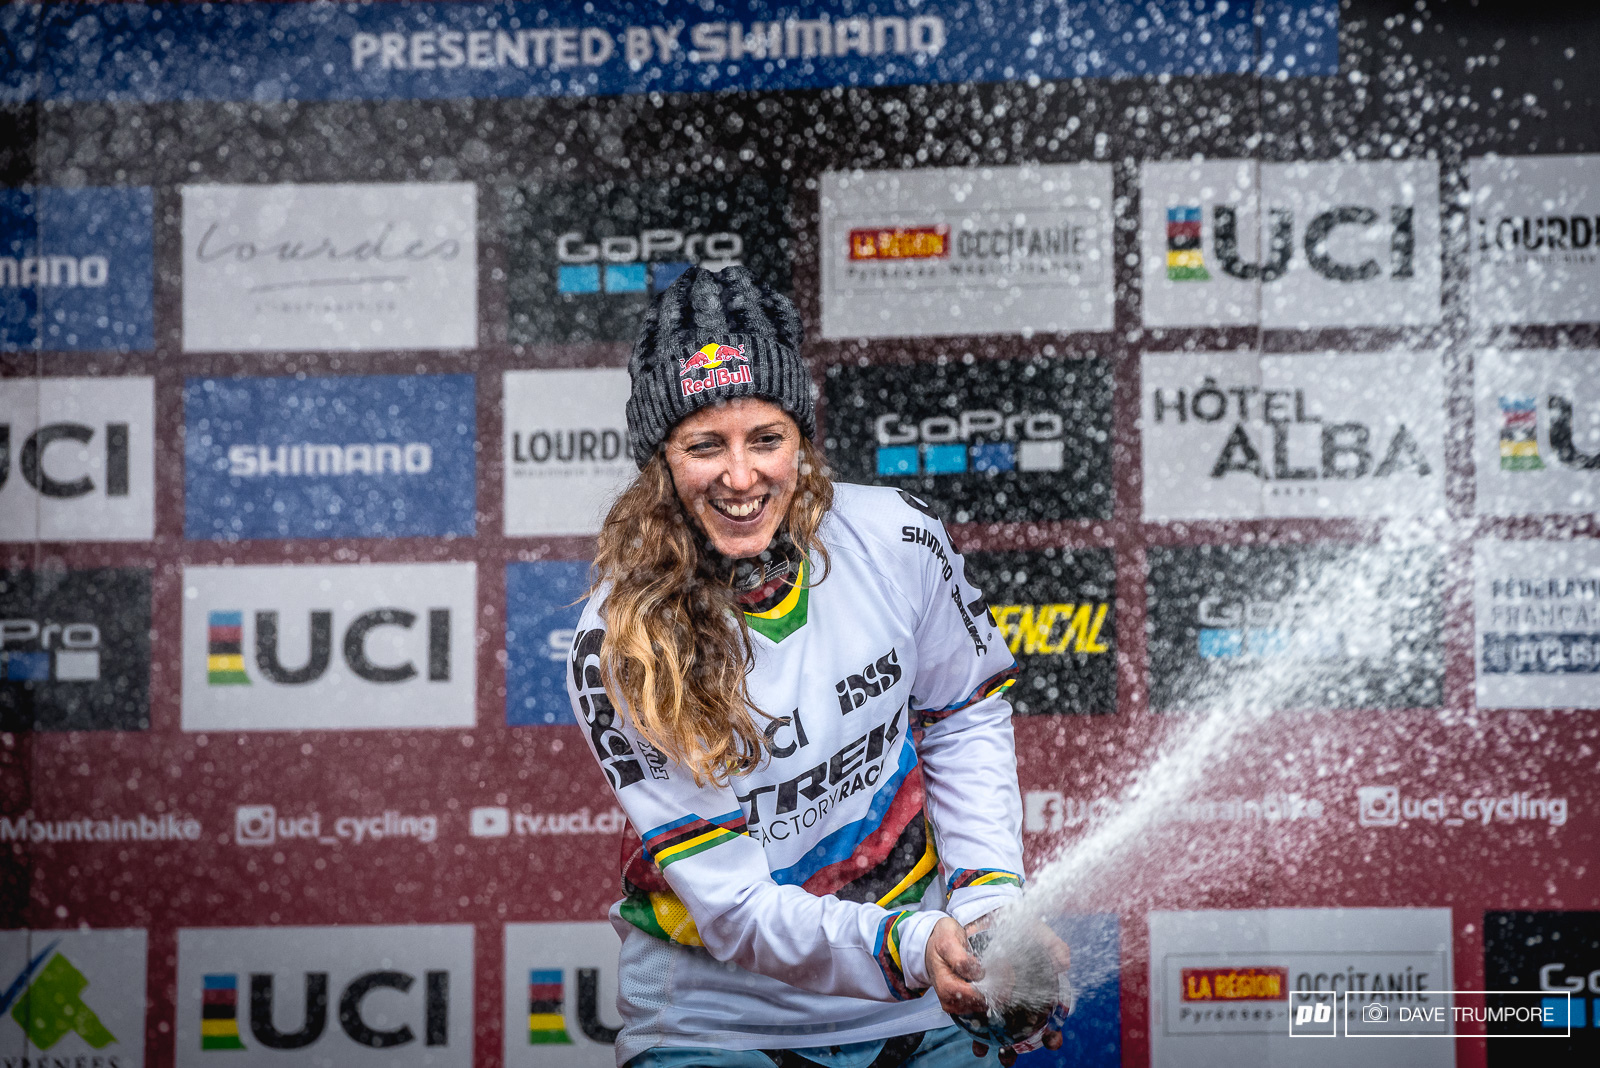 The only rain the women saw today was that of Rachel Atherton s champagne.